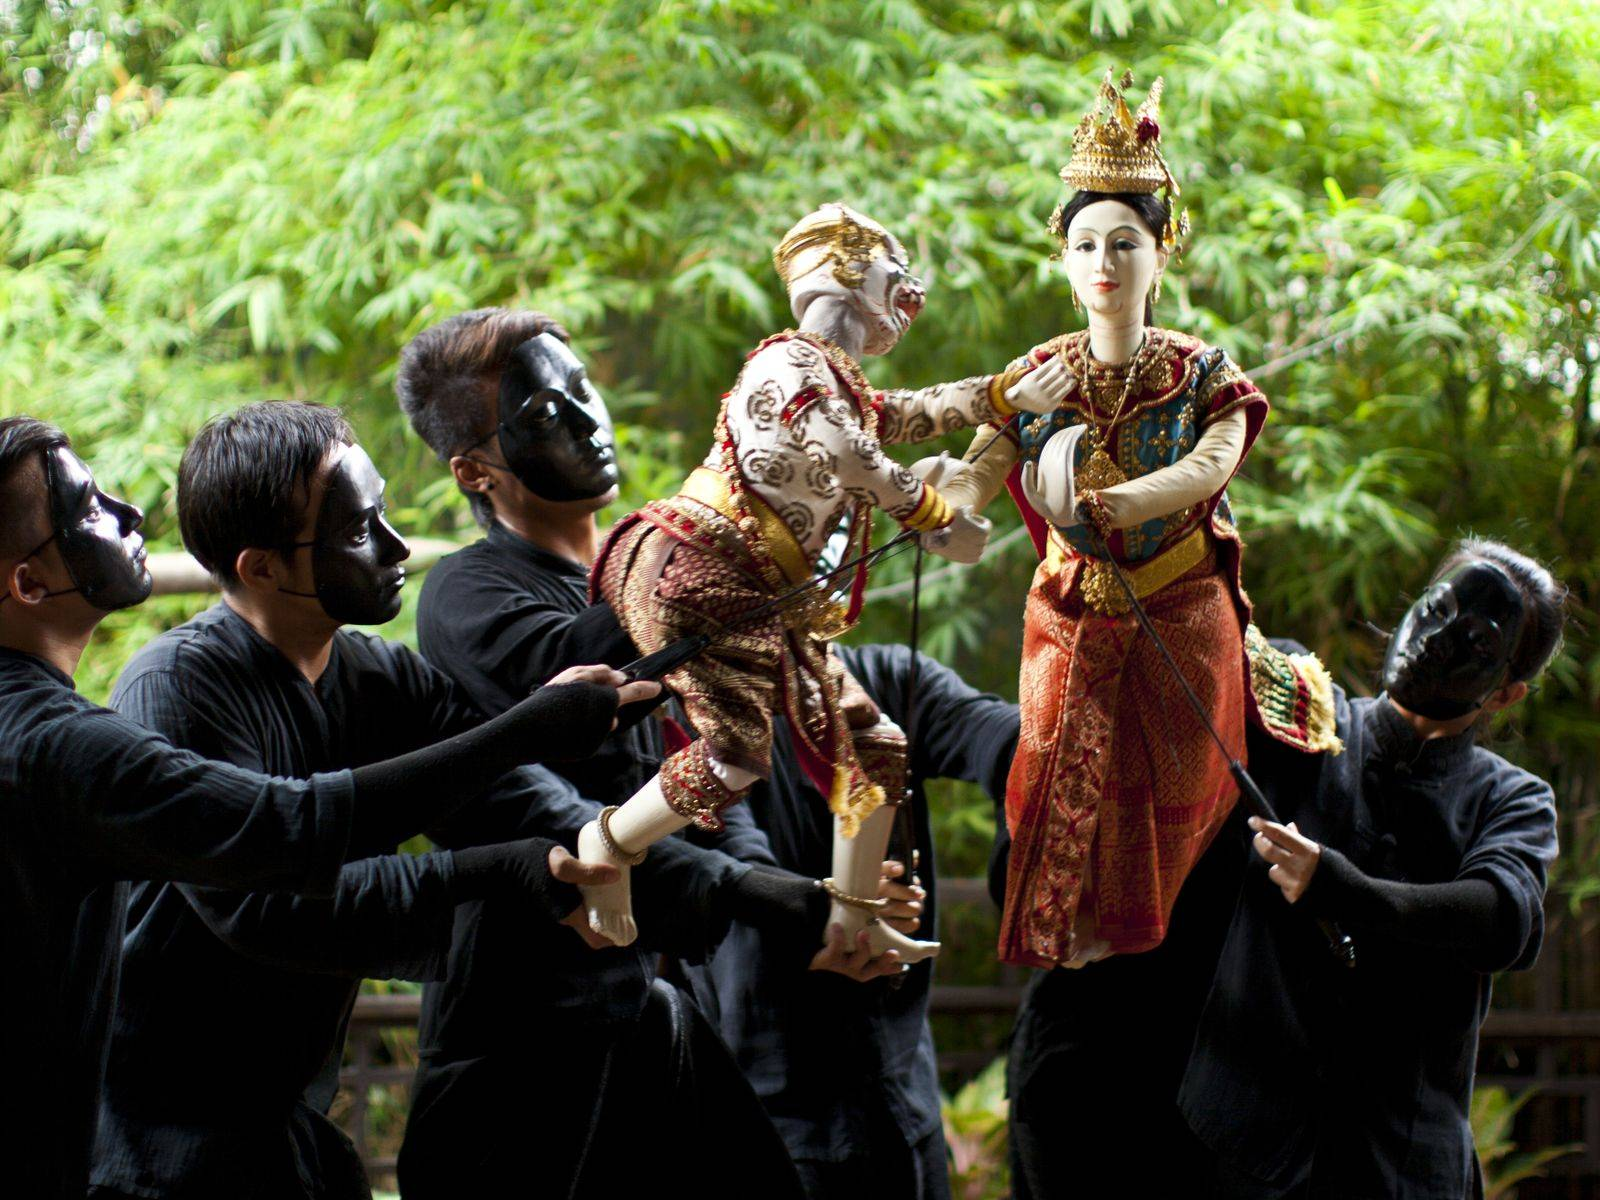 Thai Puppet Show at The Artist's House by The Canal